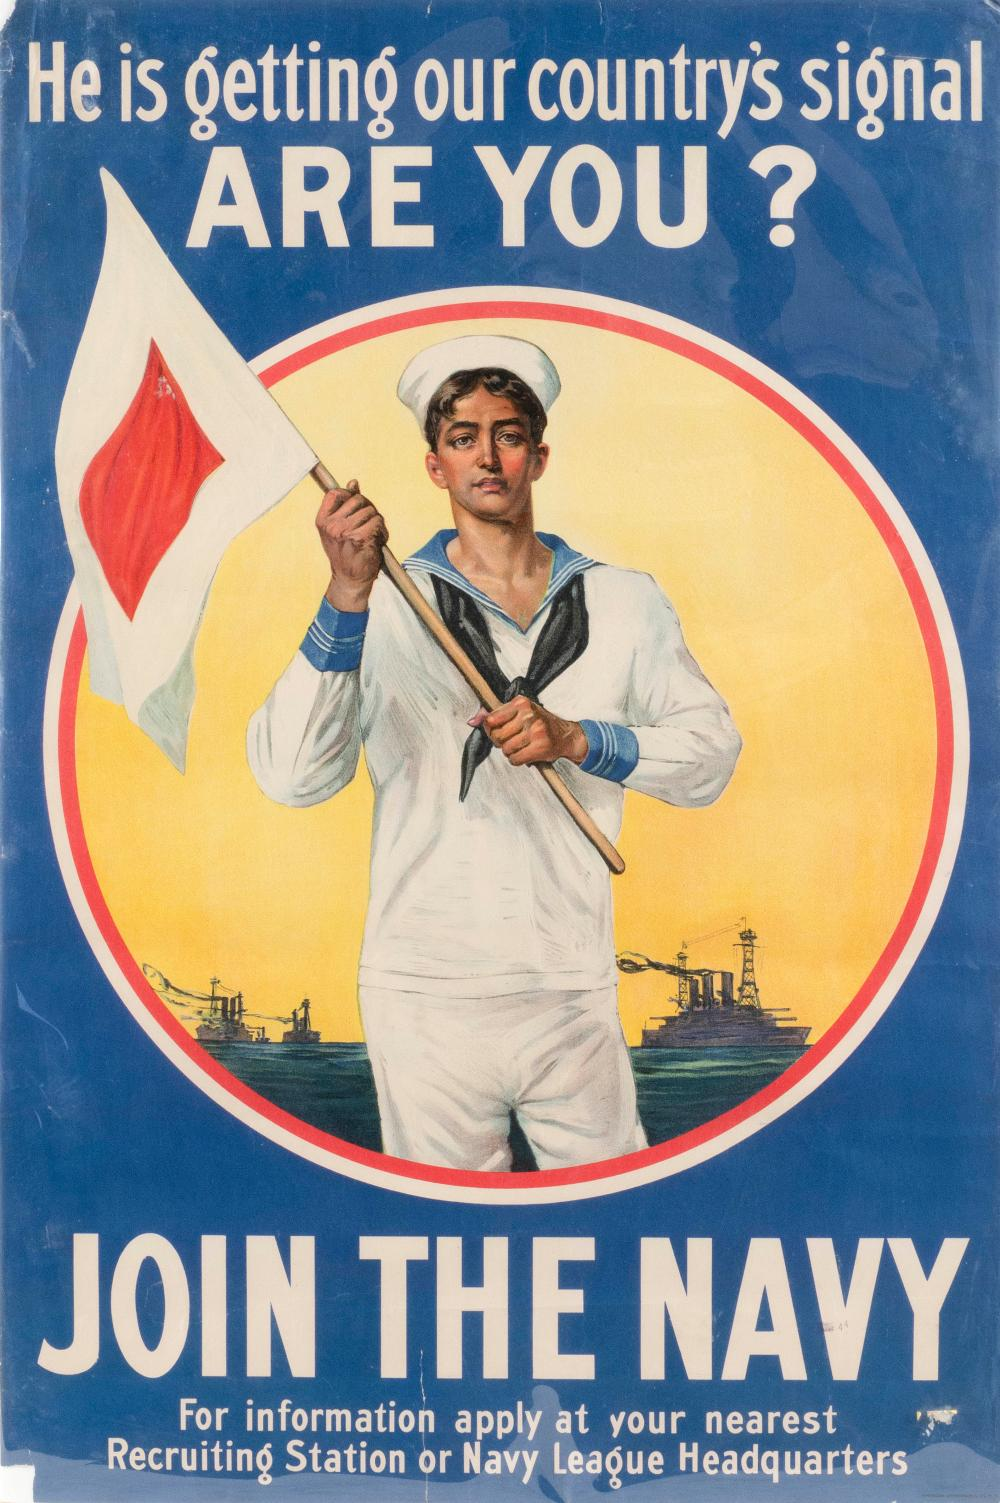 """""""HE IS GETTING OUR COUNTRY'S SIGNAL ARE YOU? JOIN THE NAVY ..."""" WORLD WAR I POSTER Published by the American Lithographic Co., N.Y...."""